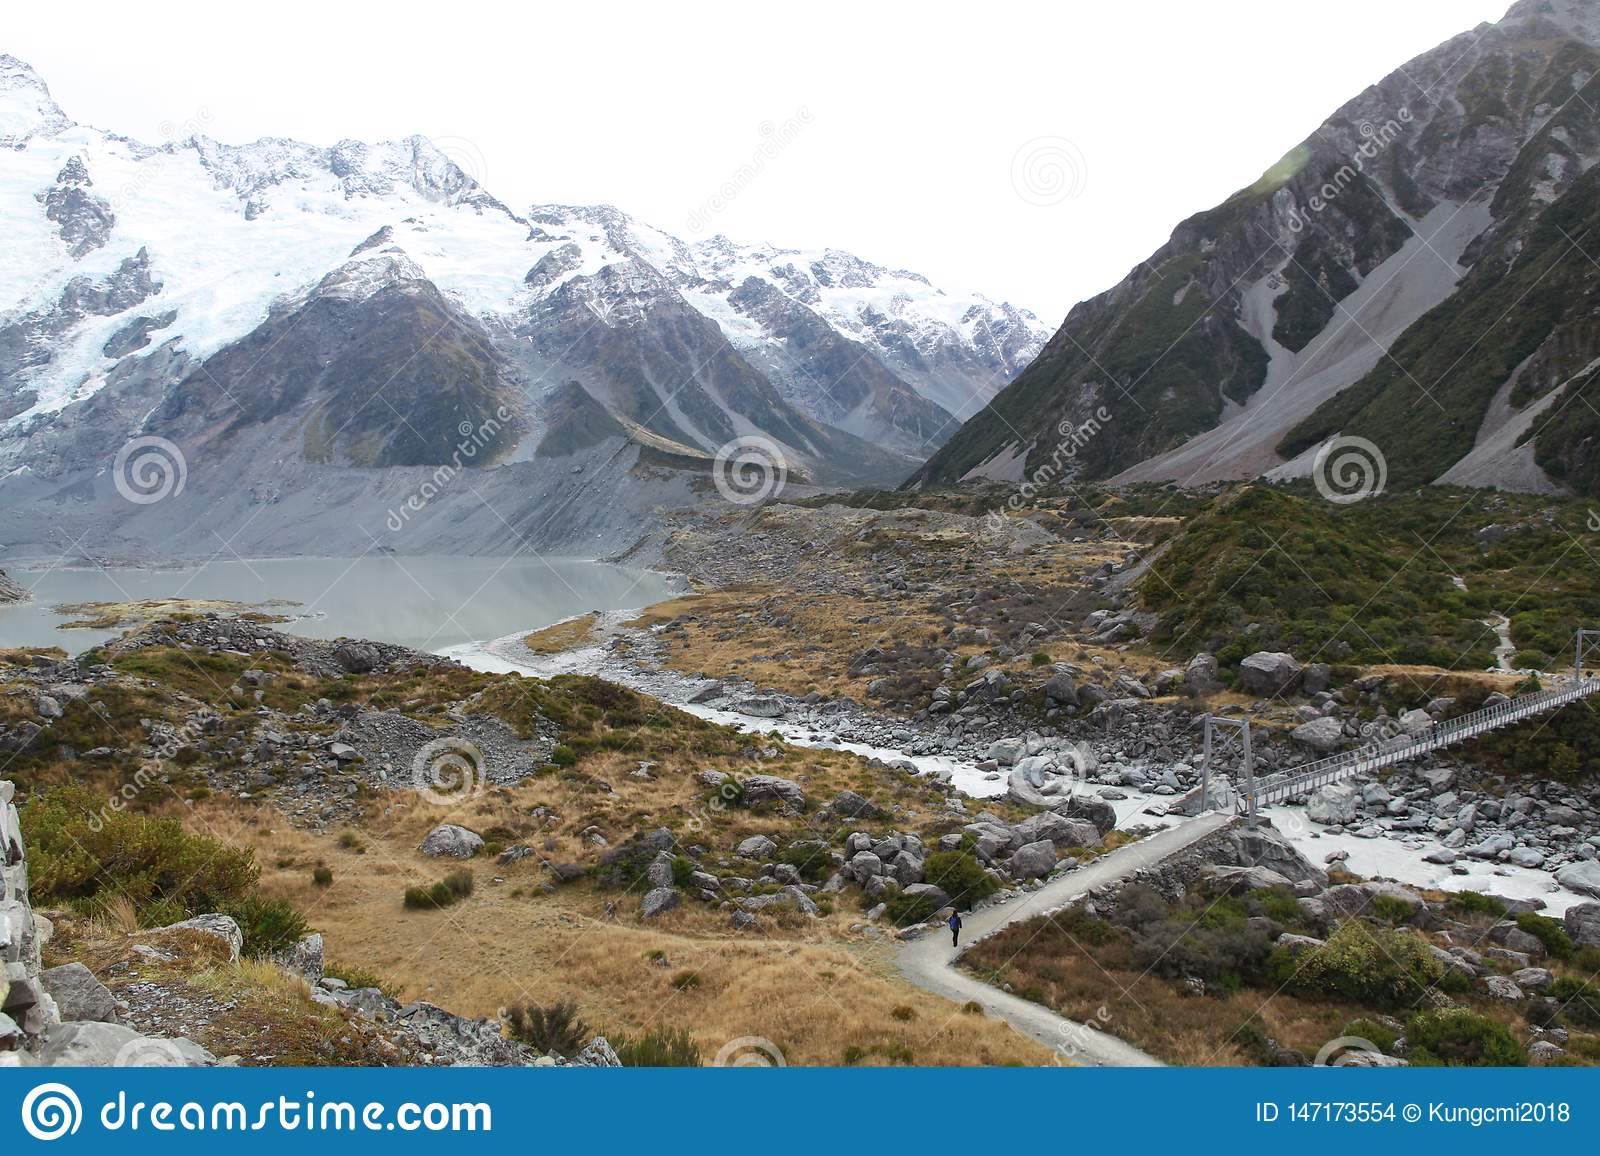 Cool trail at Mt cook